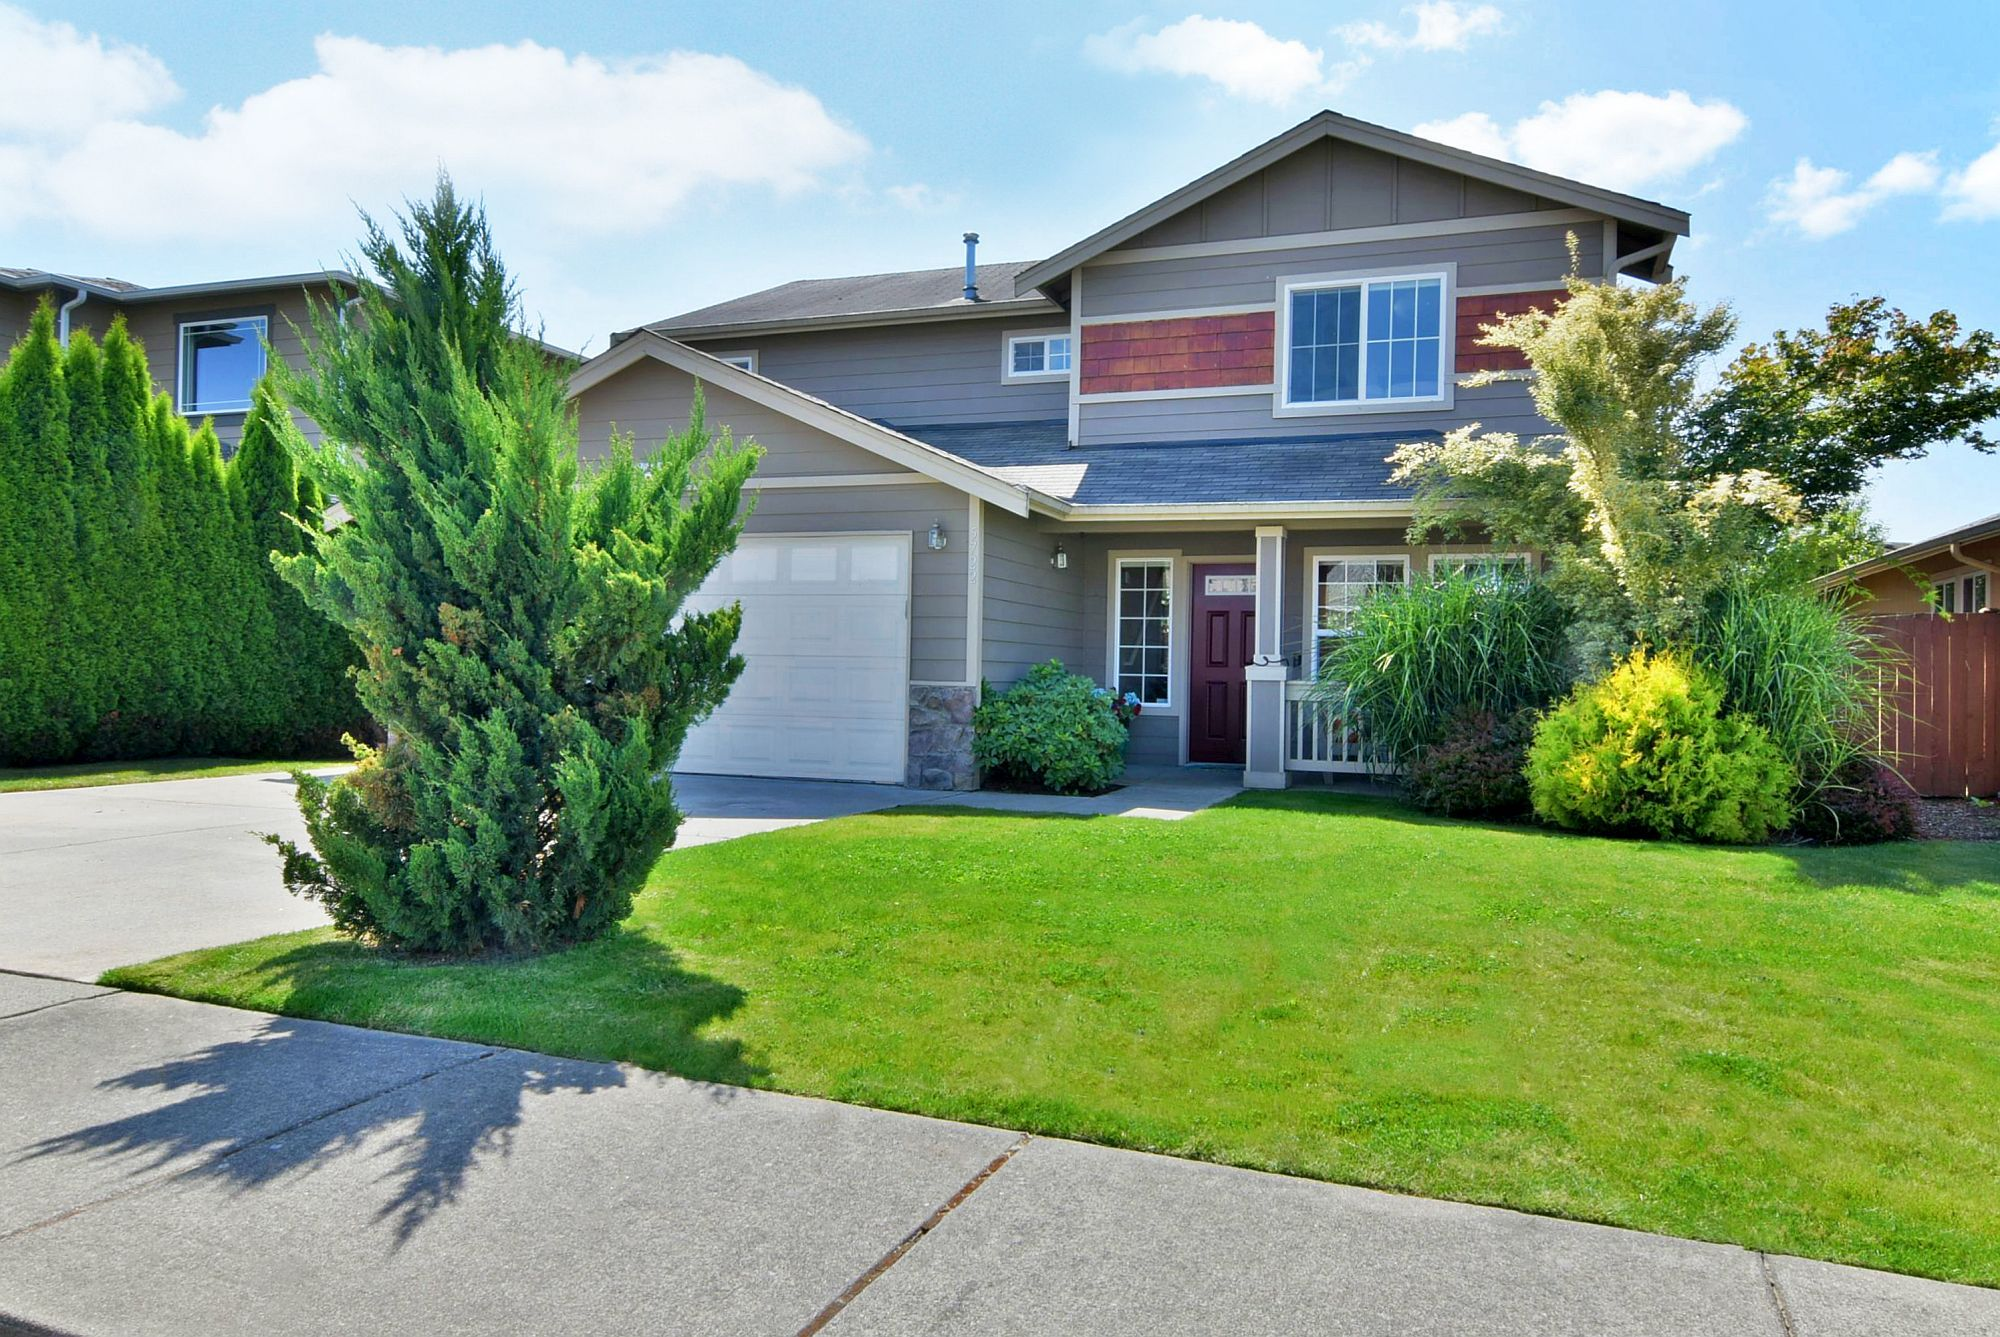 Don't miss this great home in Marysville. Affordable 4